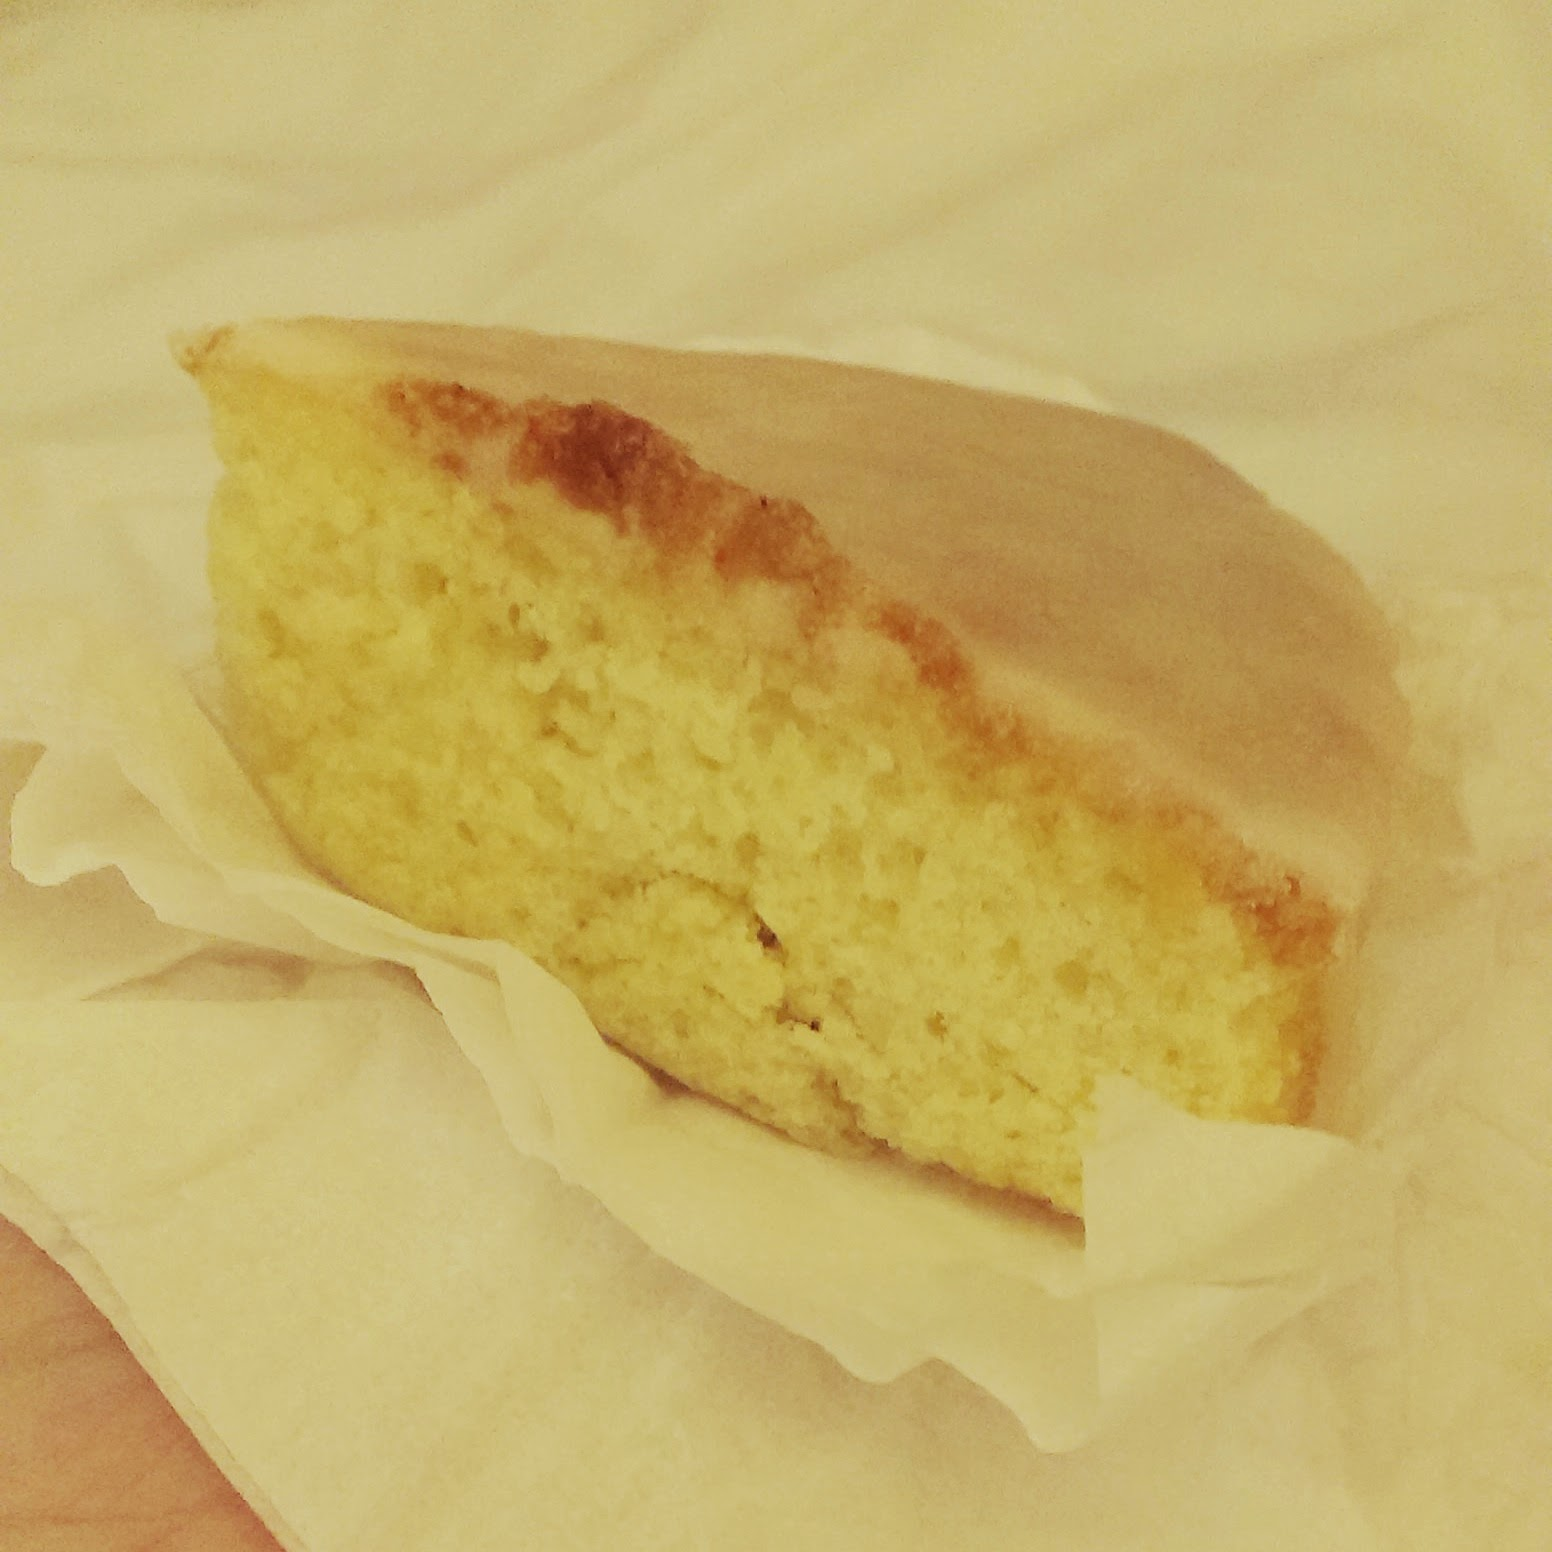 10pm - lemon drizzle cake